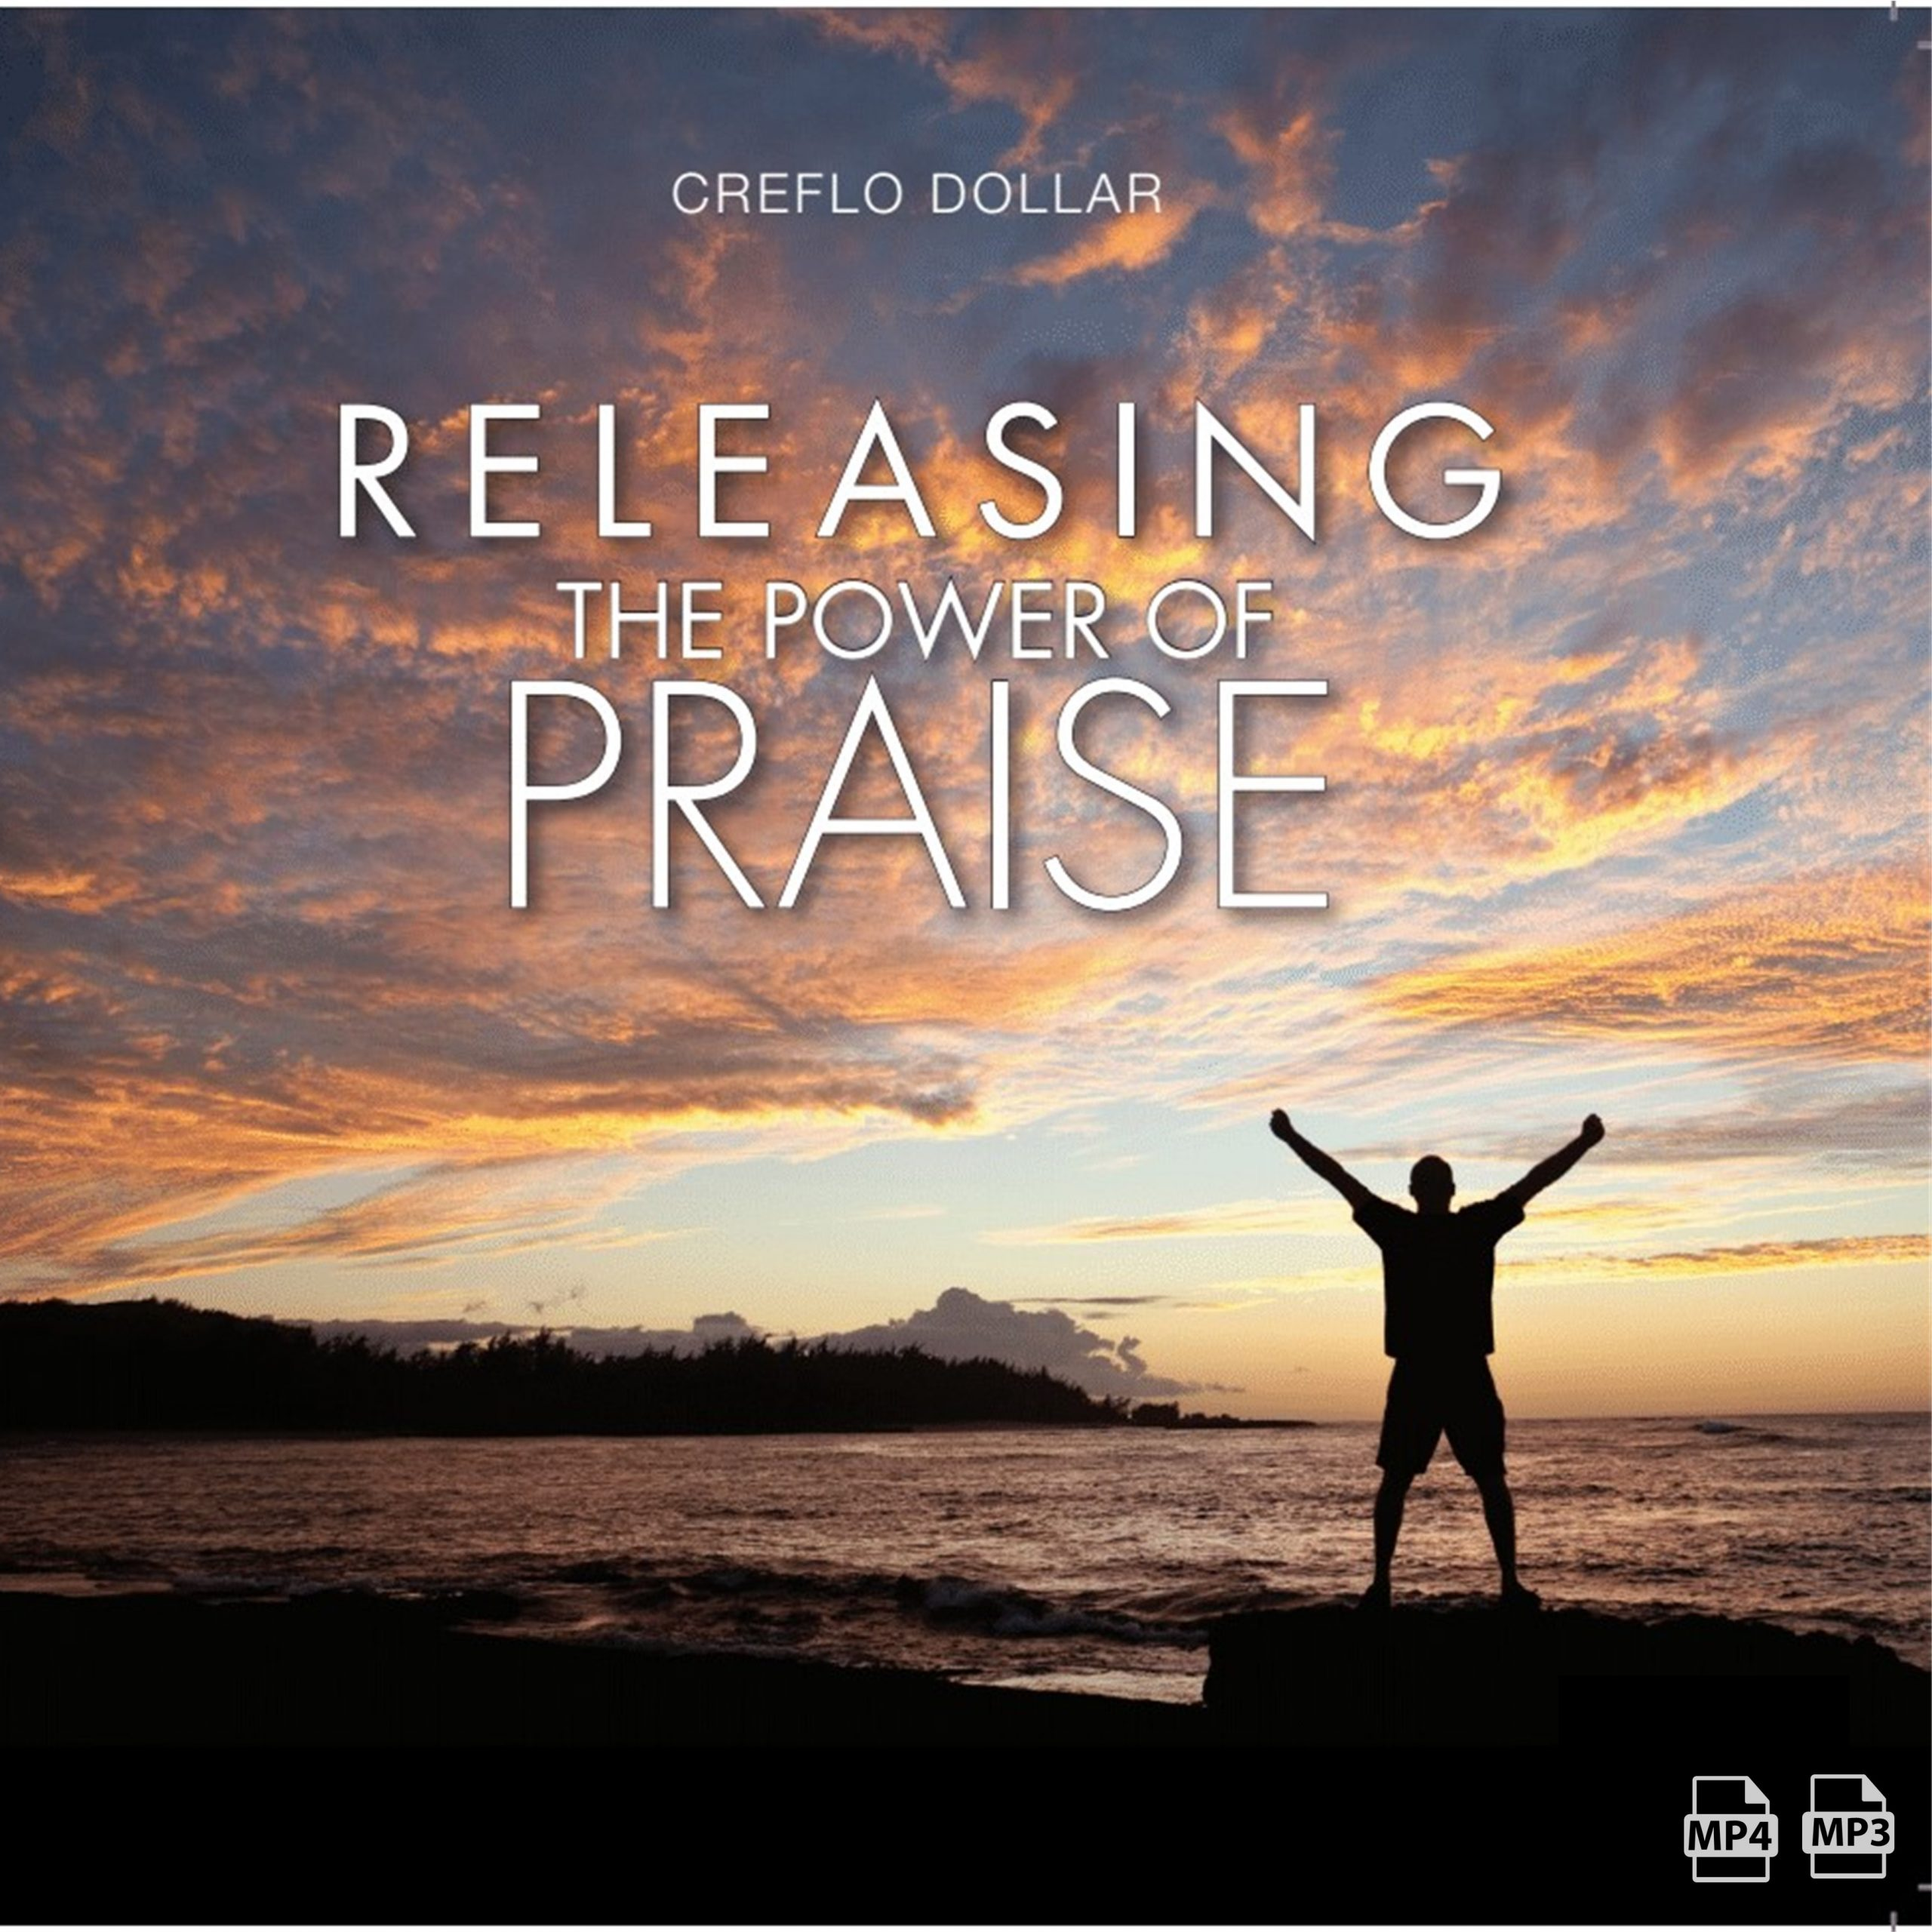 Releasing-The-Power-of-Praise MP4, MP3